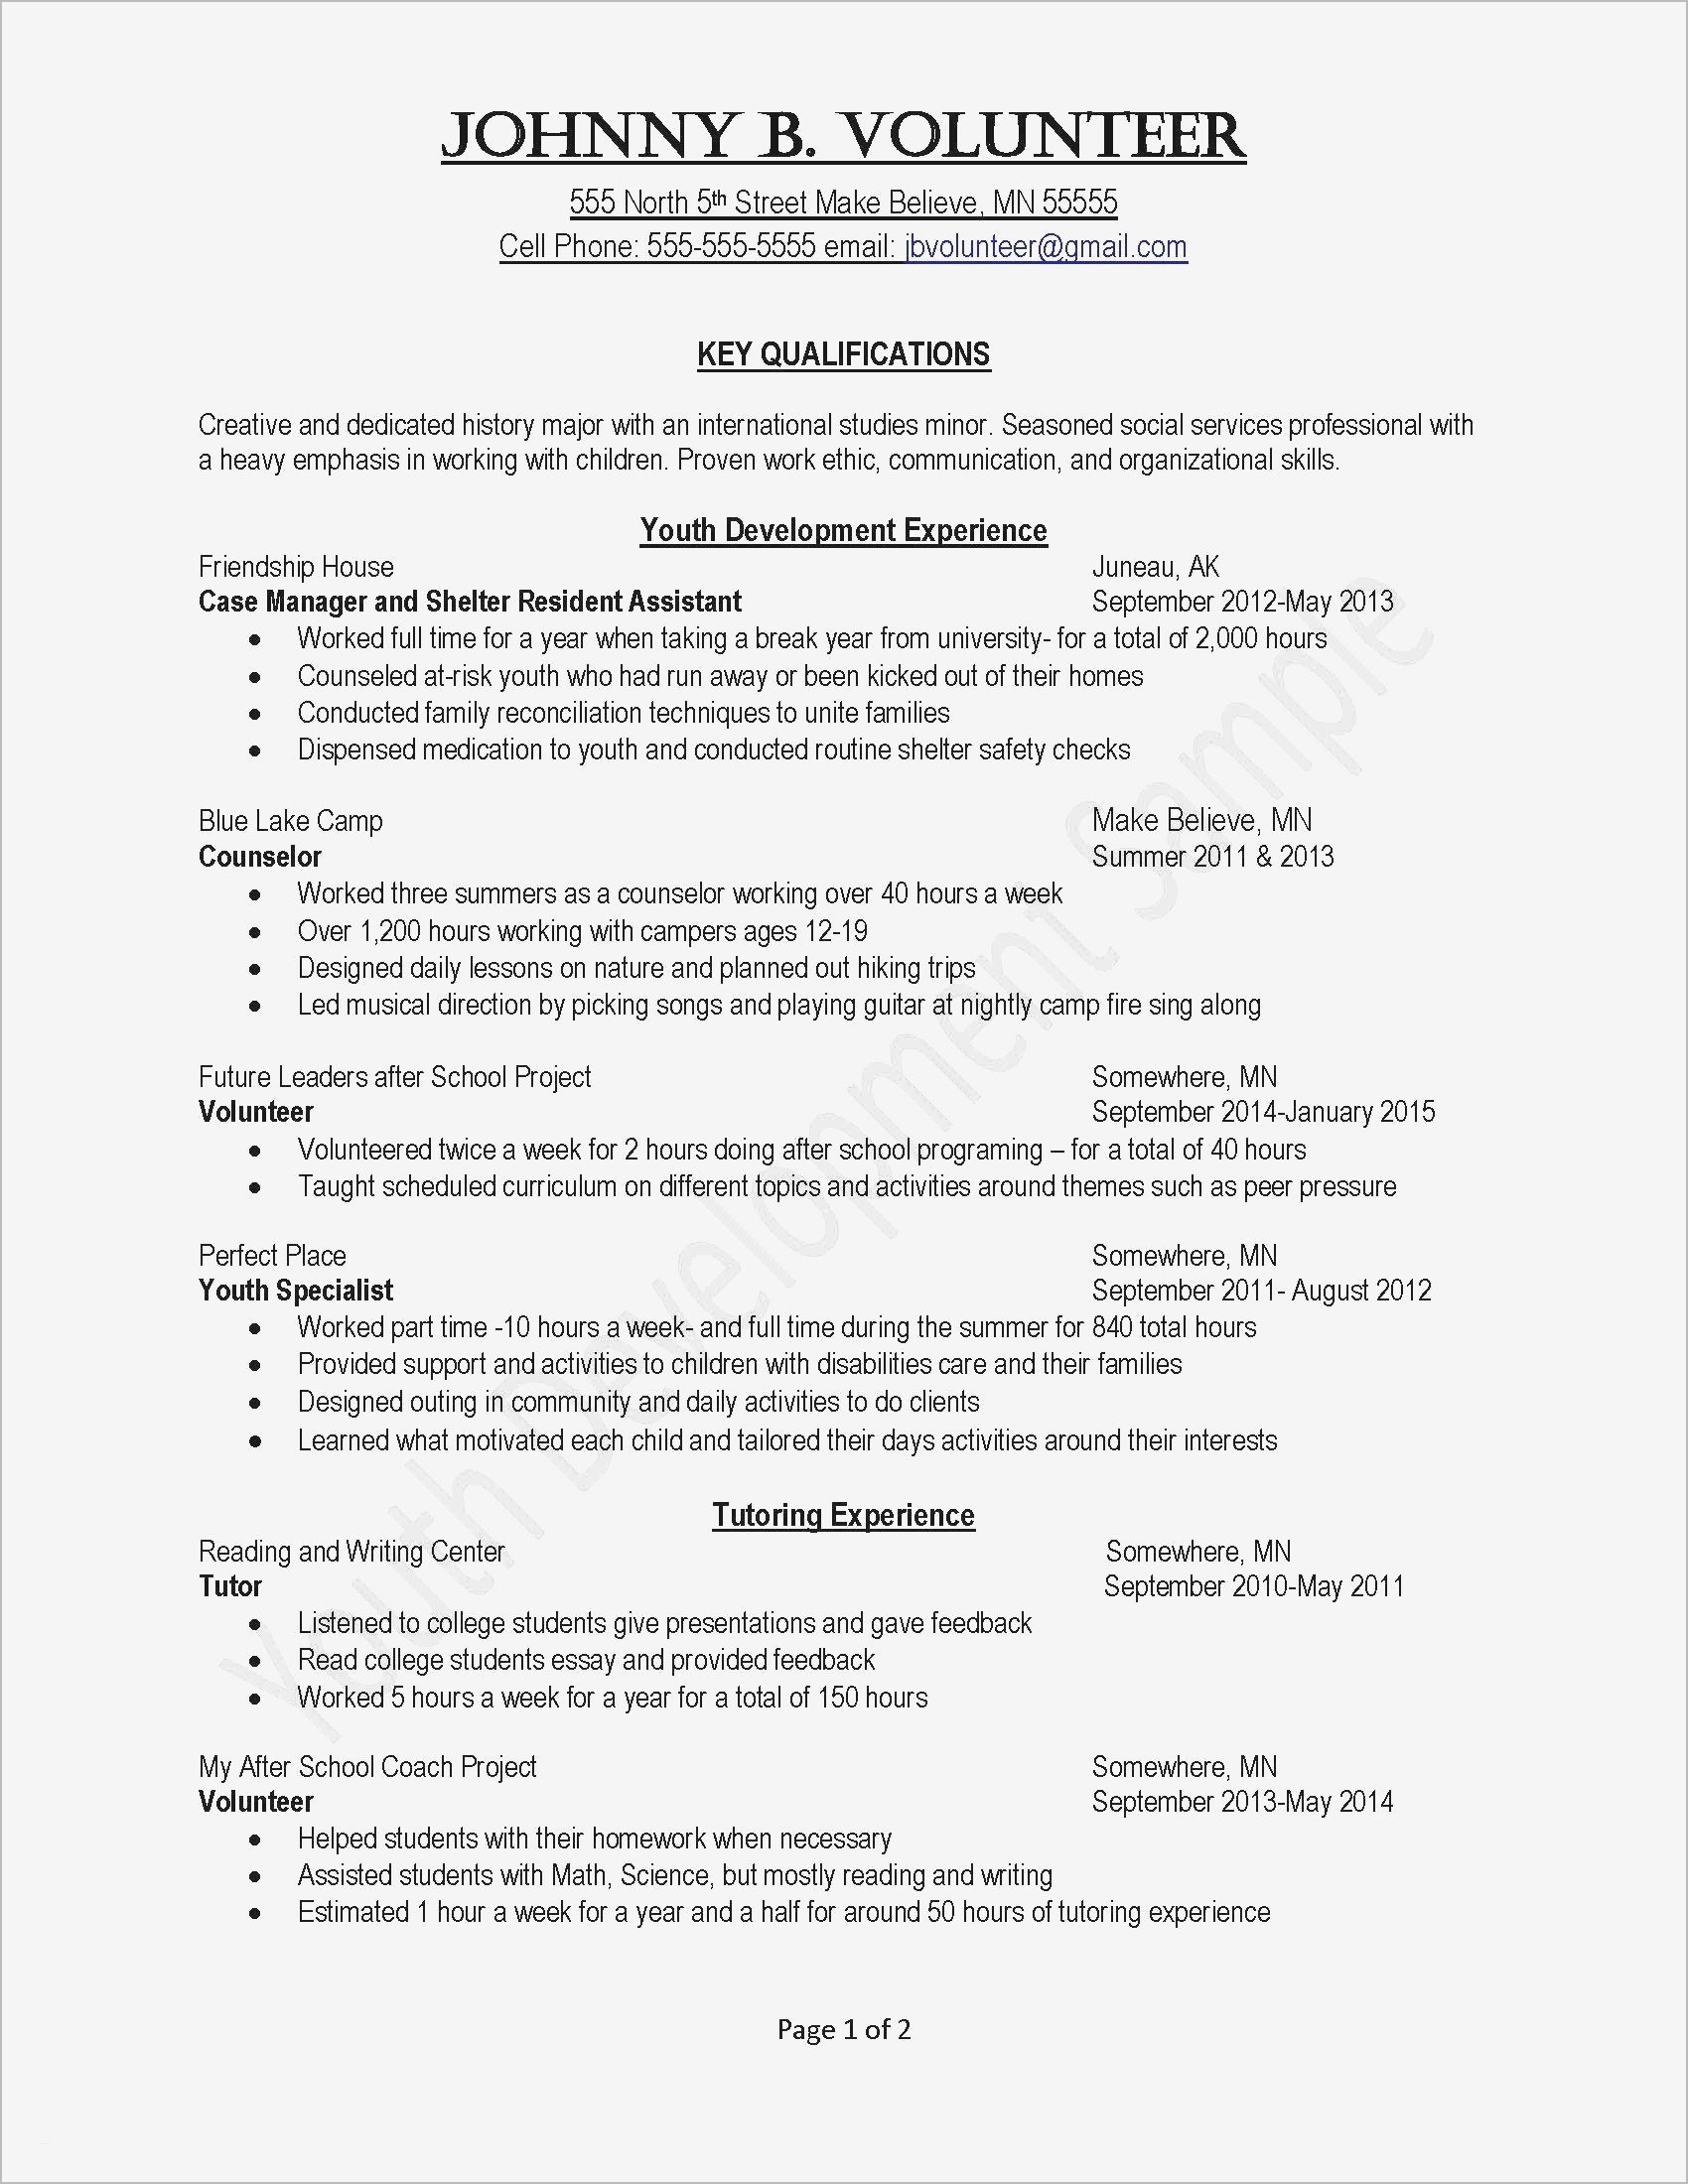 Human Services Resume - Template for A Resume Inspirationa Cfo Resume Template Inspirational